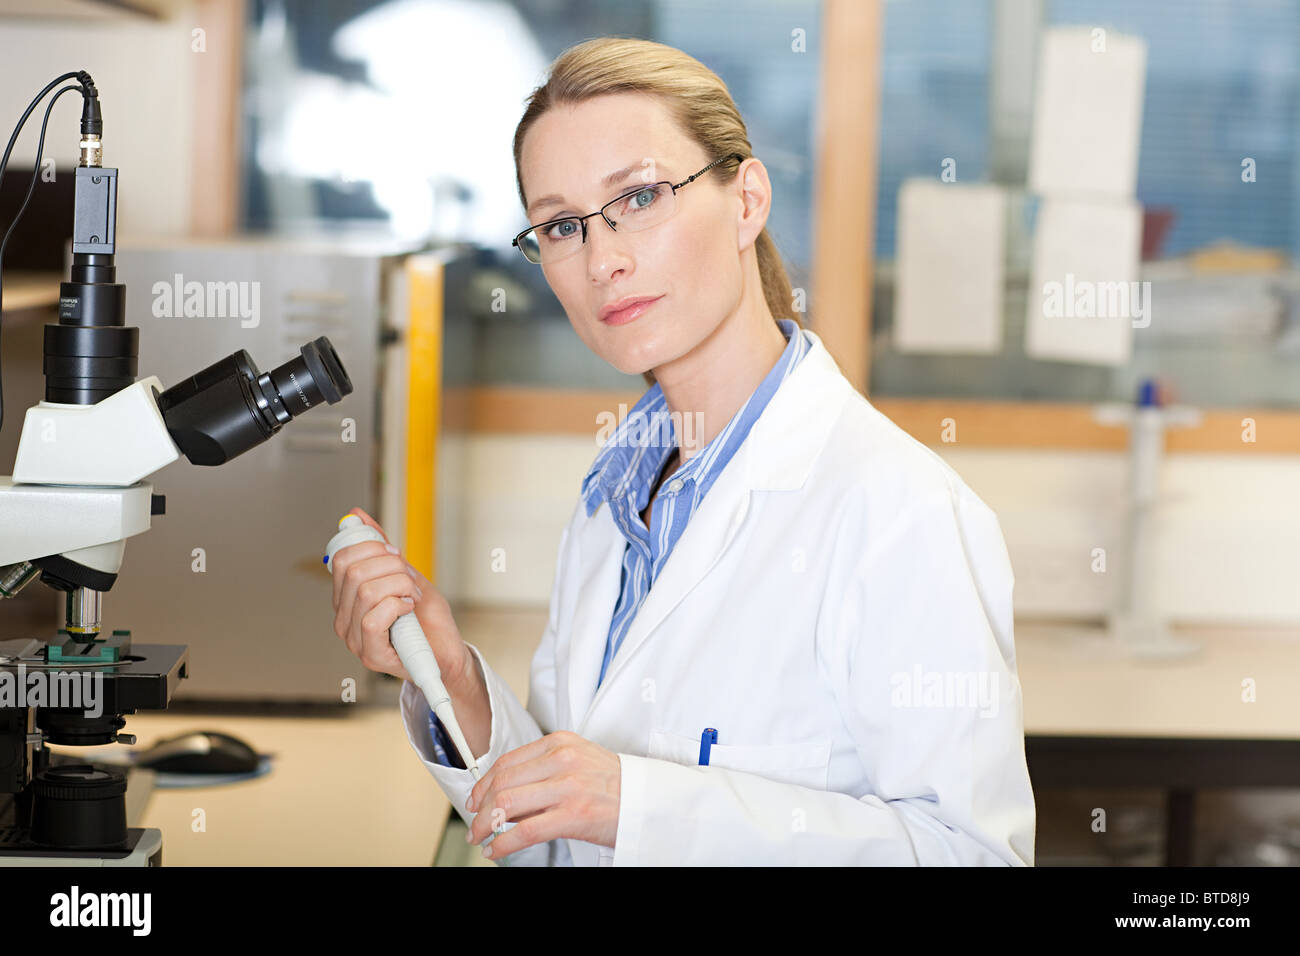 Female doctor in laboratory - Stock Image